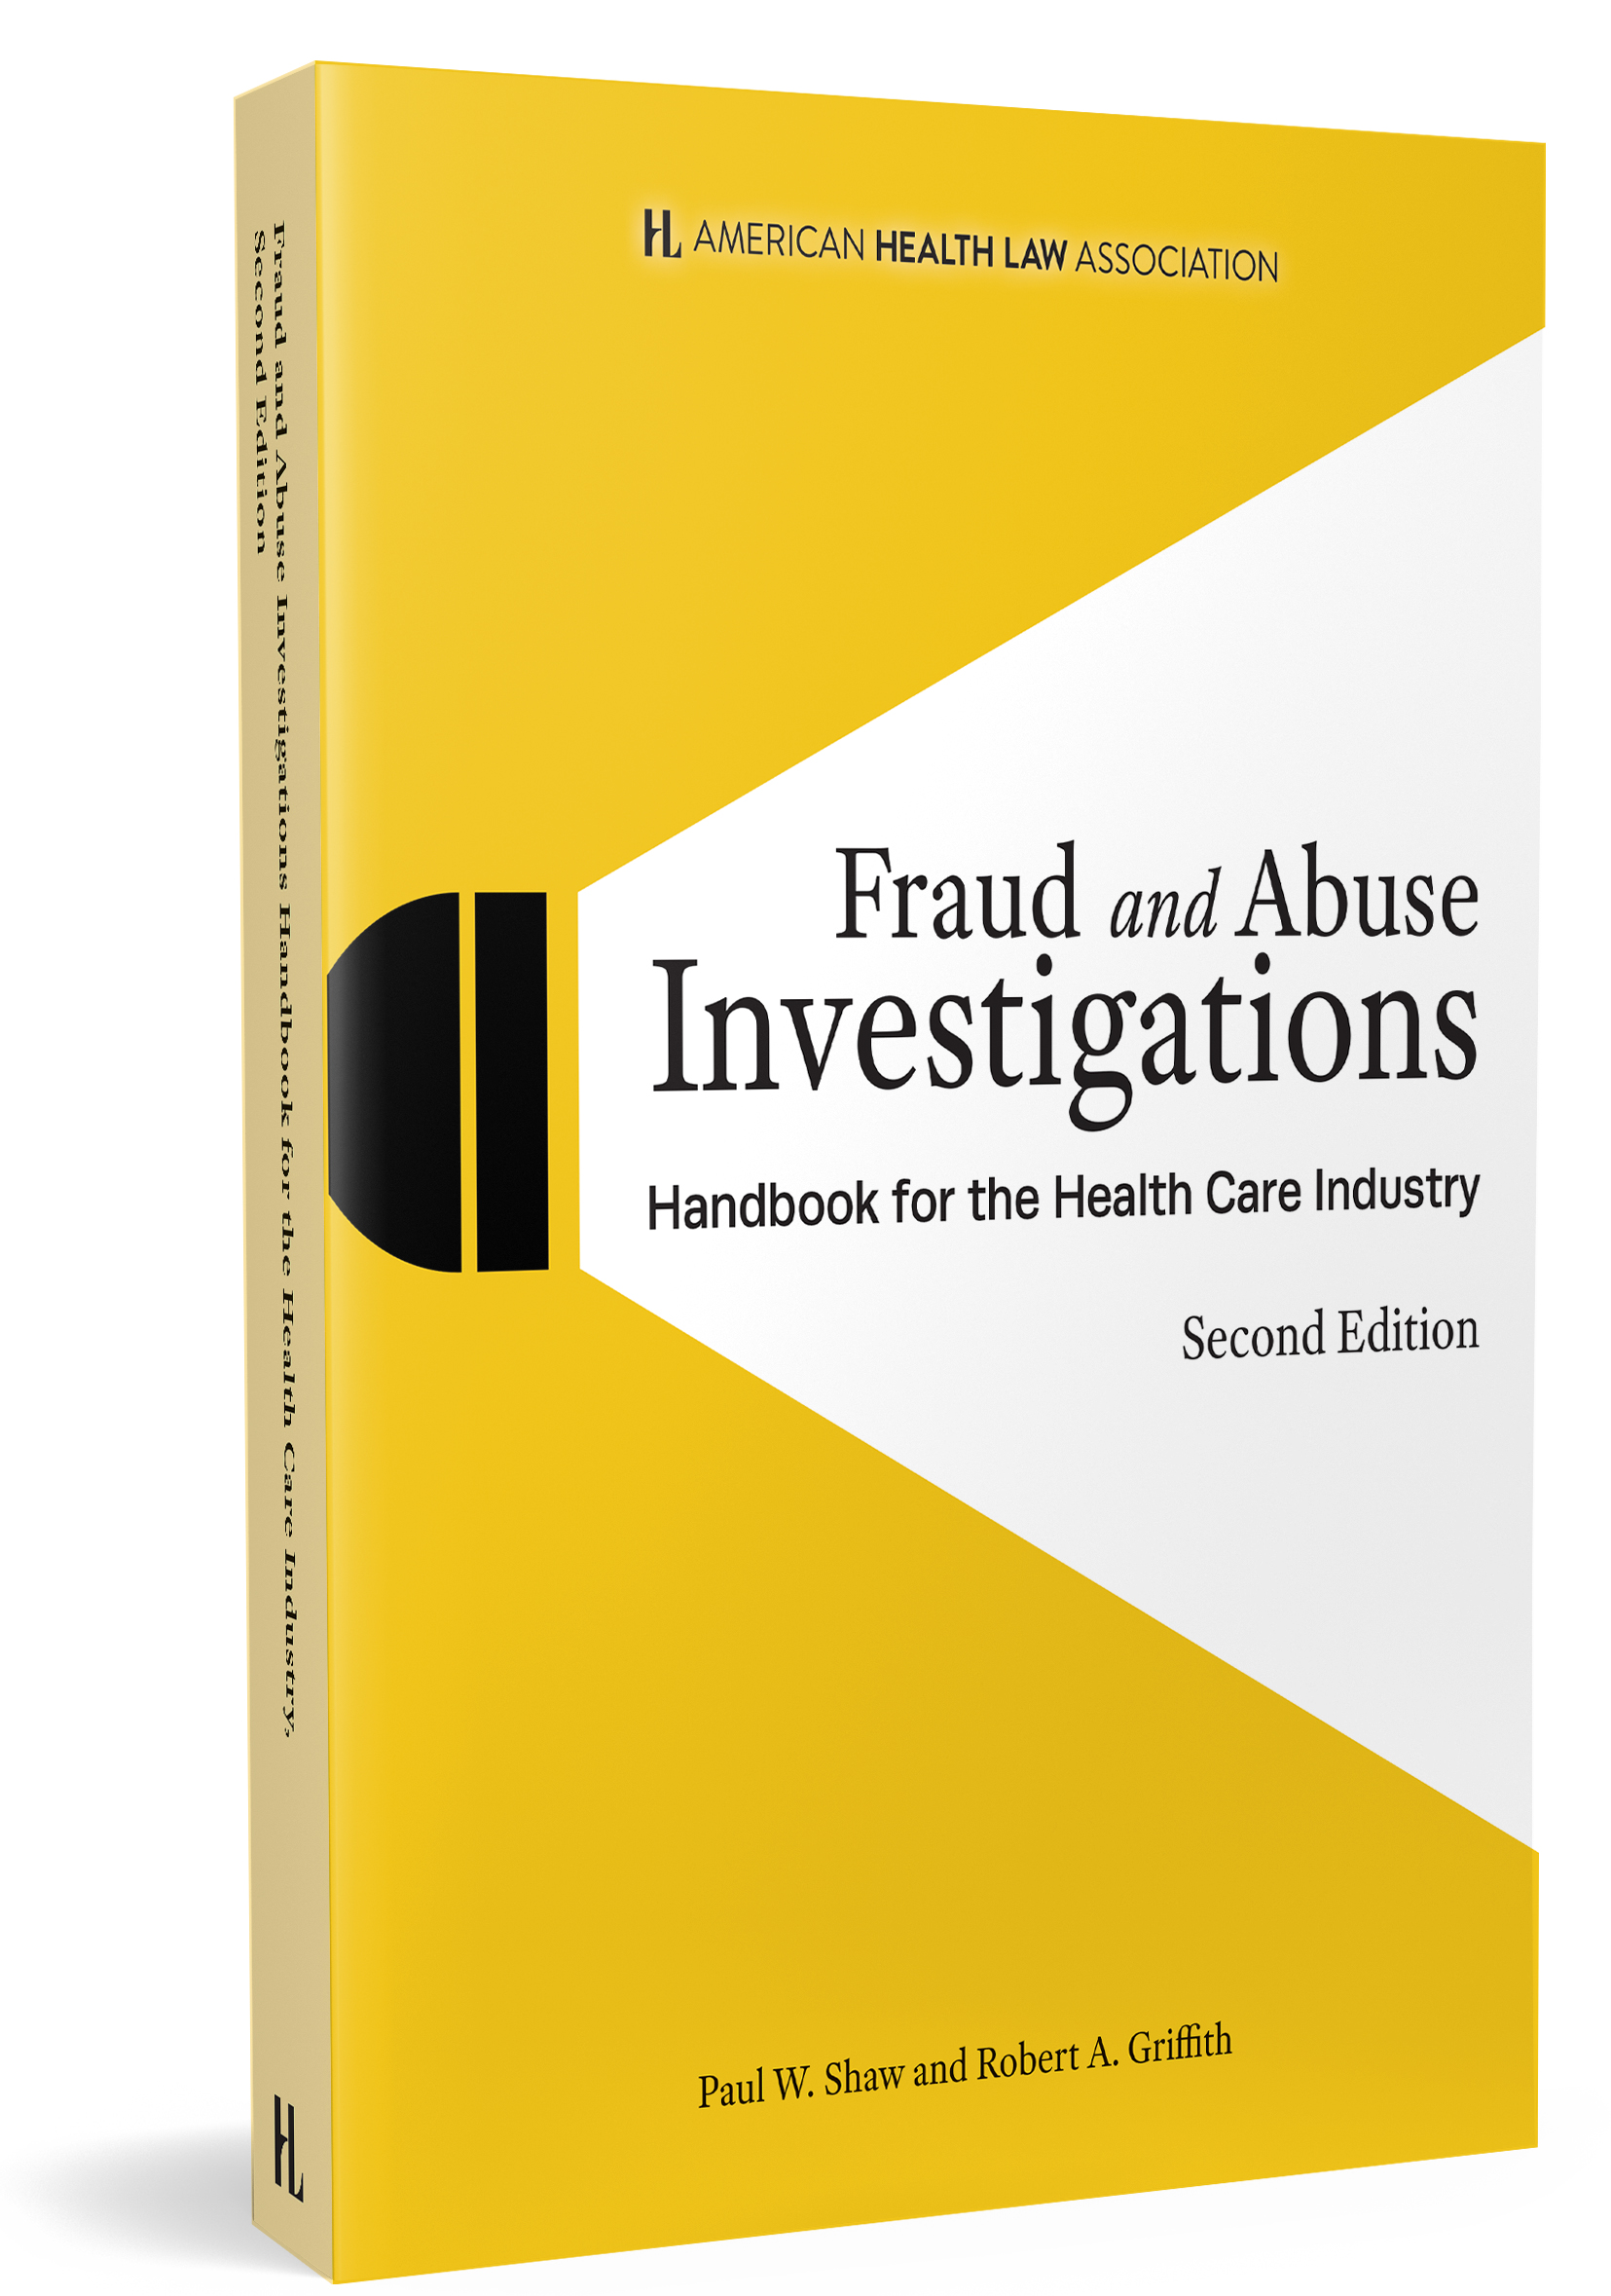 Fraud and Abuse Investigations: Handbook for the Heath Care Industry, Second Edition. BY: PAUL W. SHAW ROBERT A. GRIFFITH